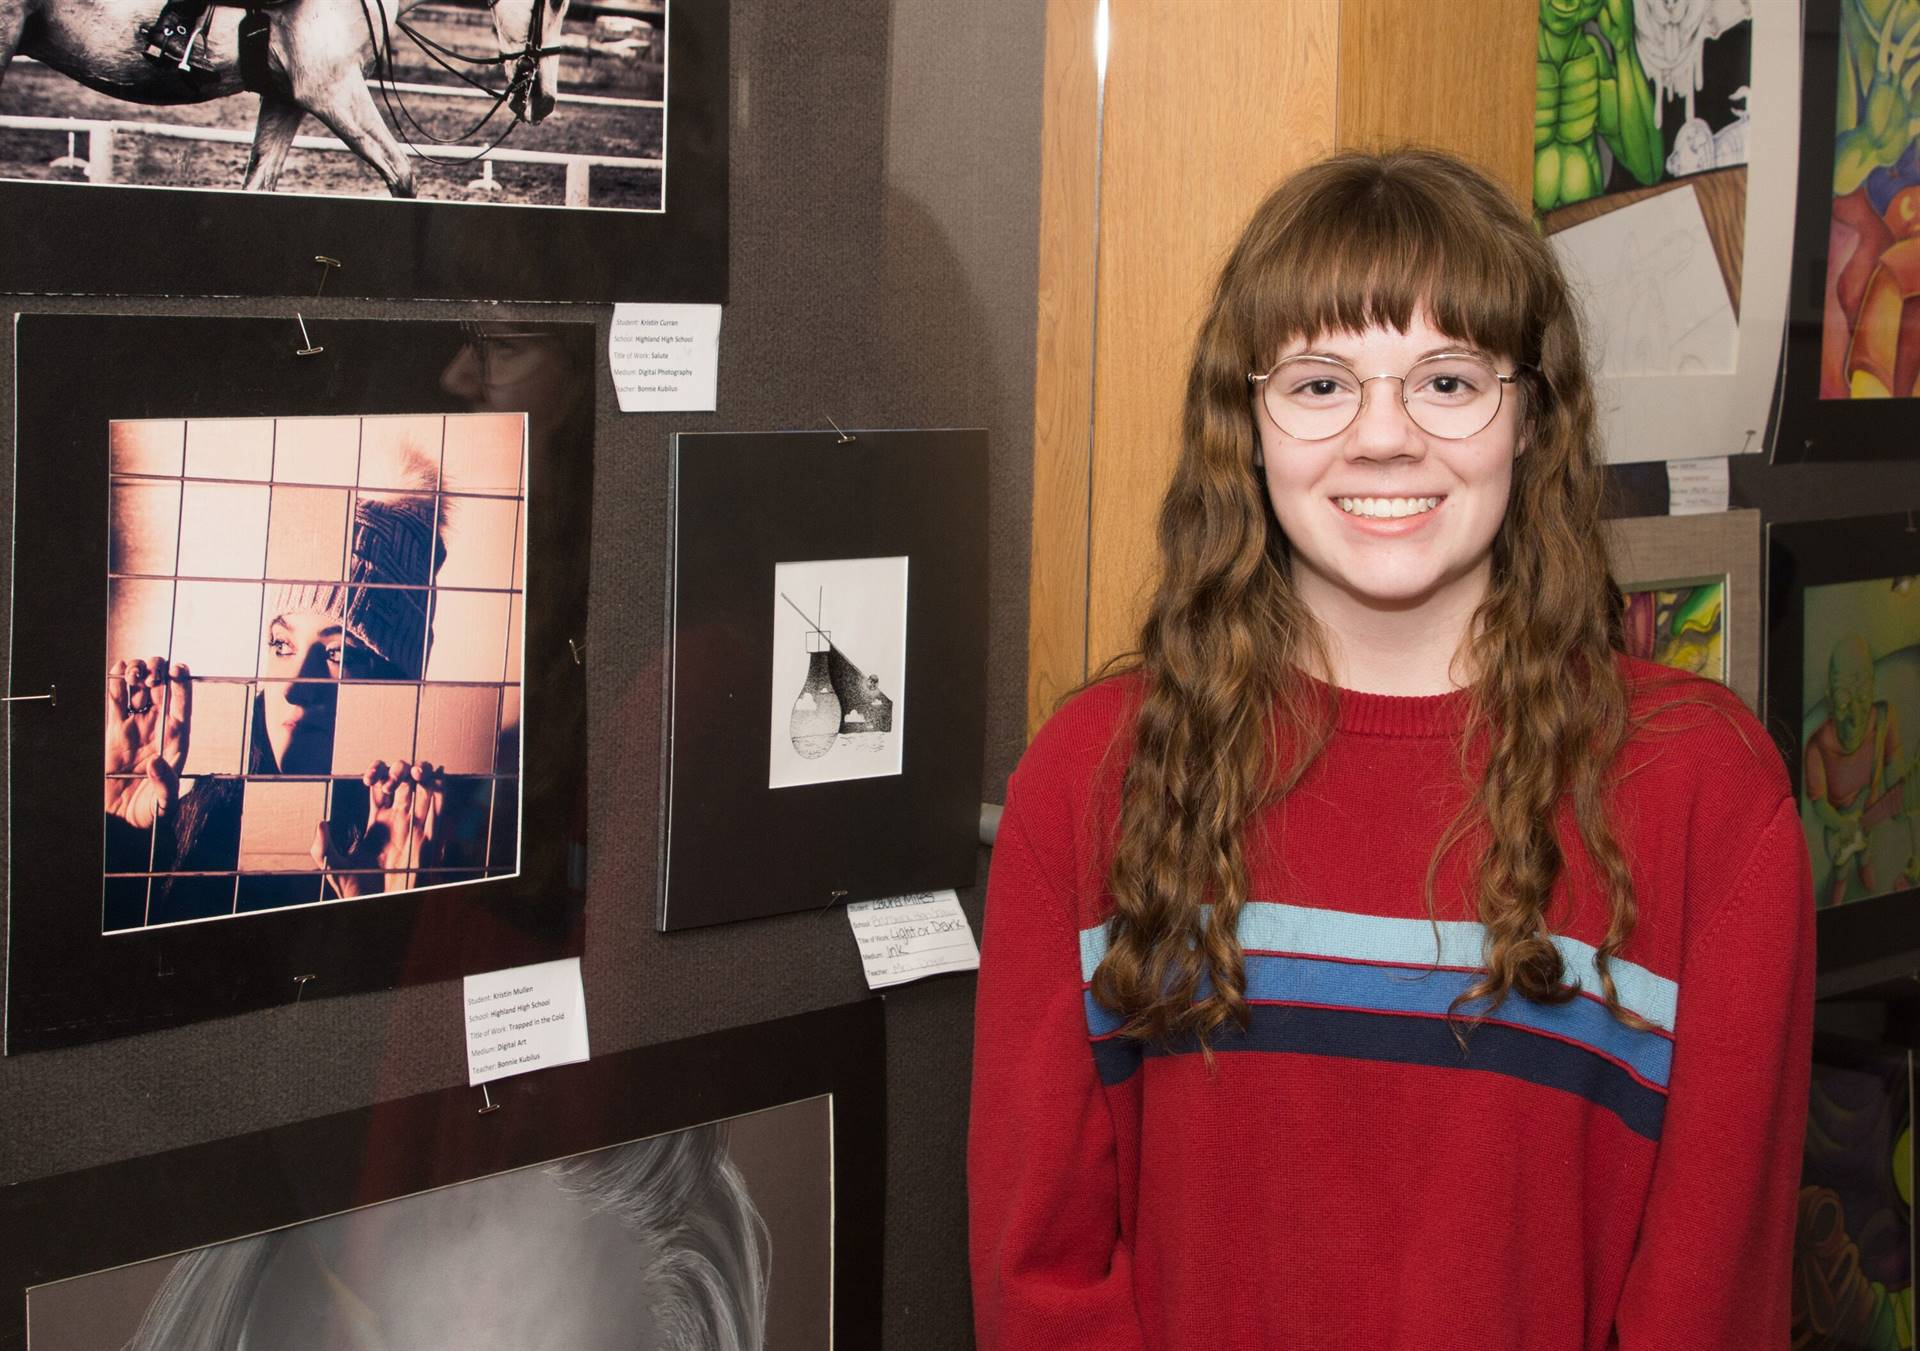 Laura Miles, Third Place 2019 Individual Artwork Winner, with her artwork